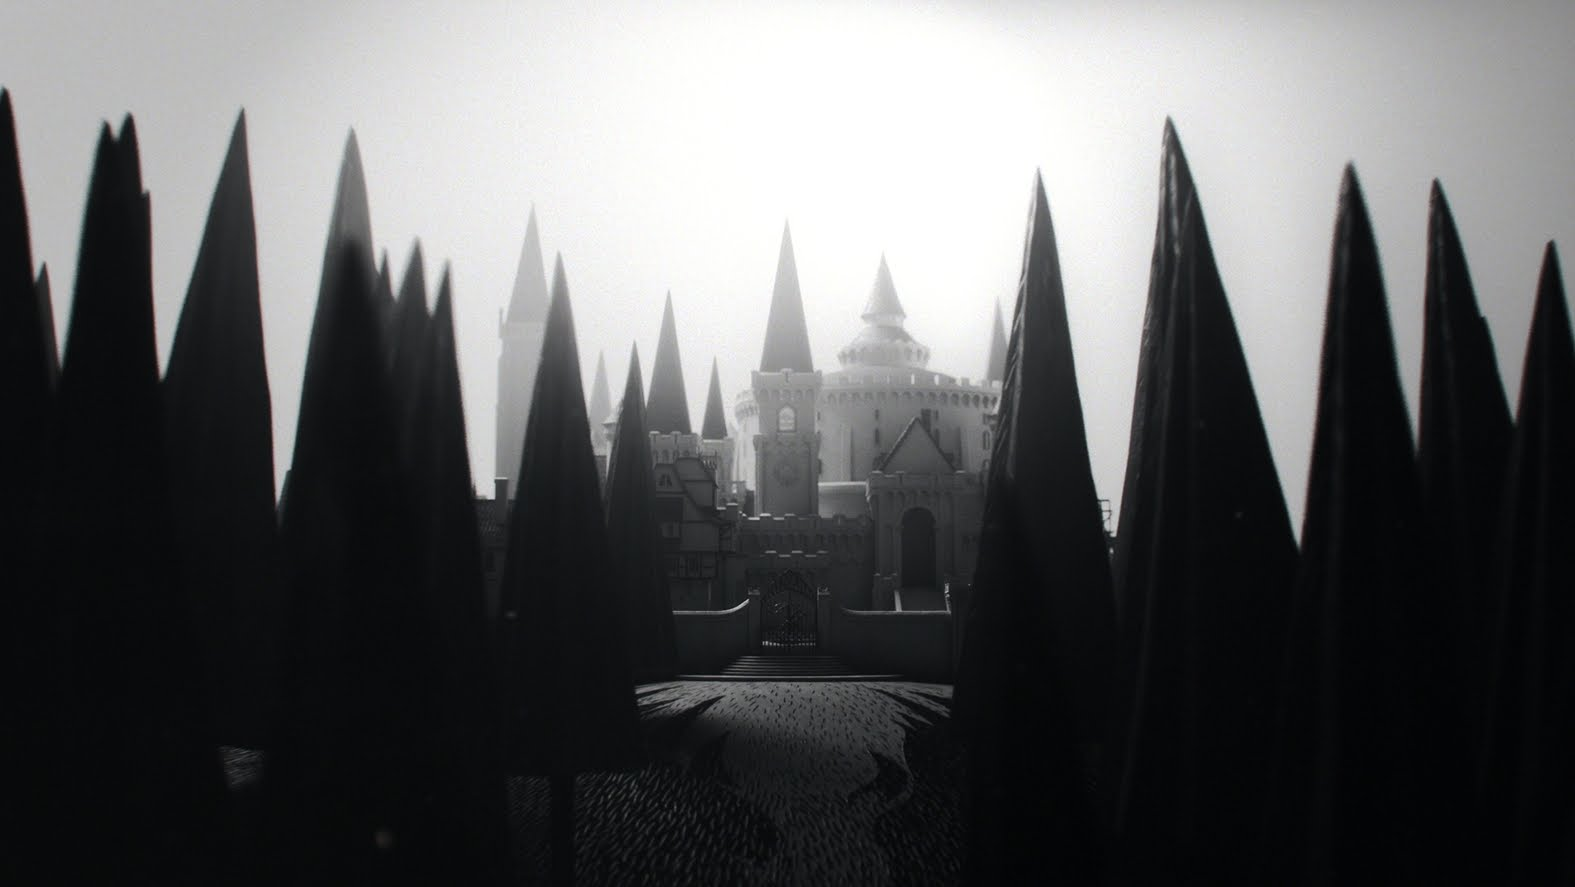 Ilvermorny School of Witchcraft and Wizardry, A New Short Story by Harry Potter Author J.K. Rowling